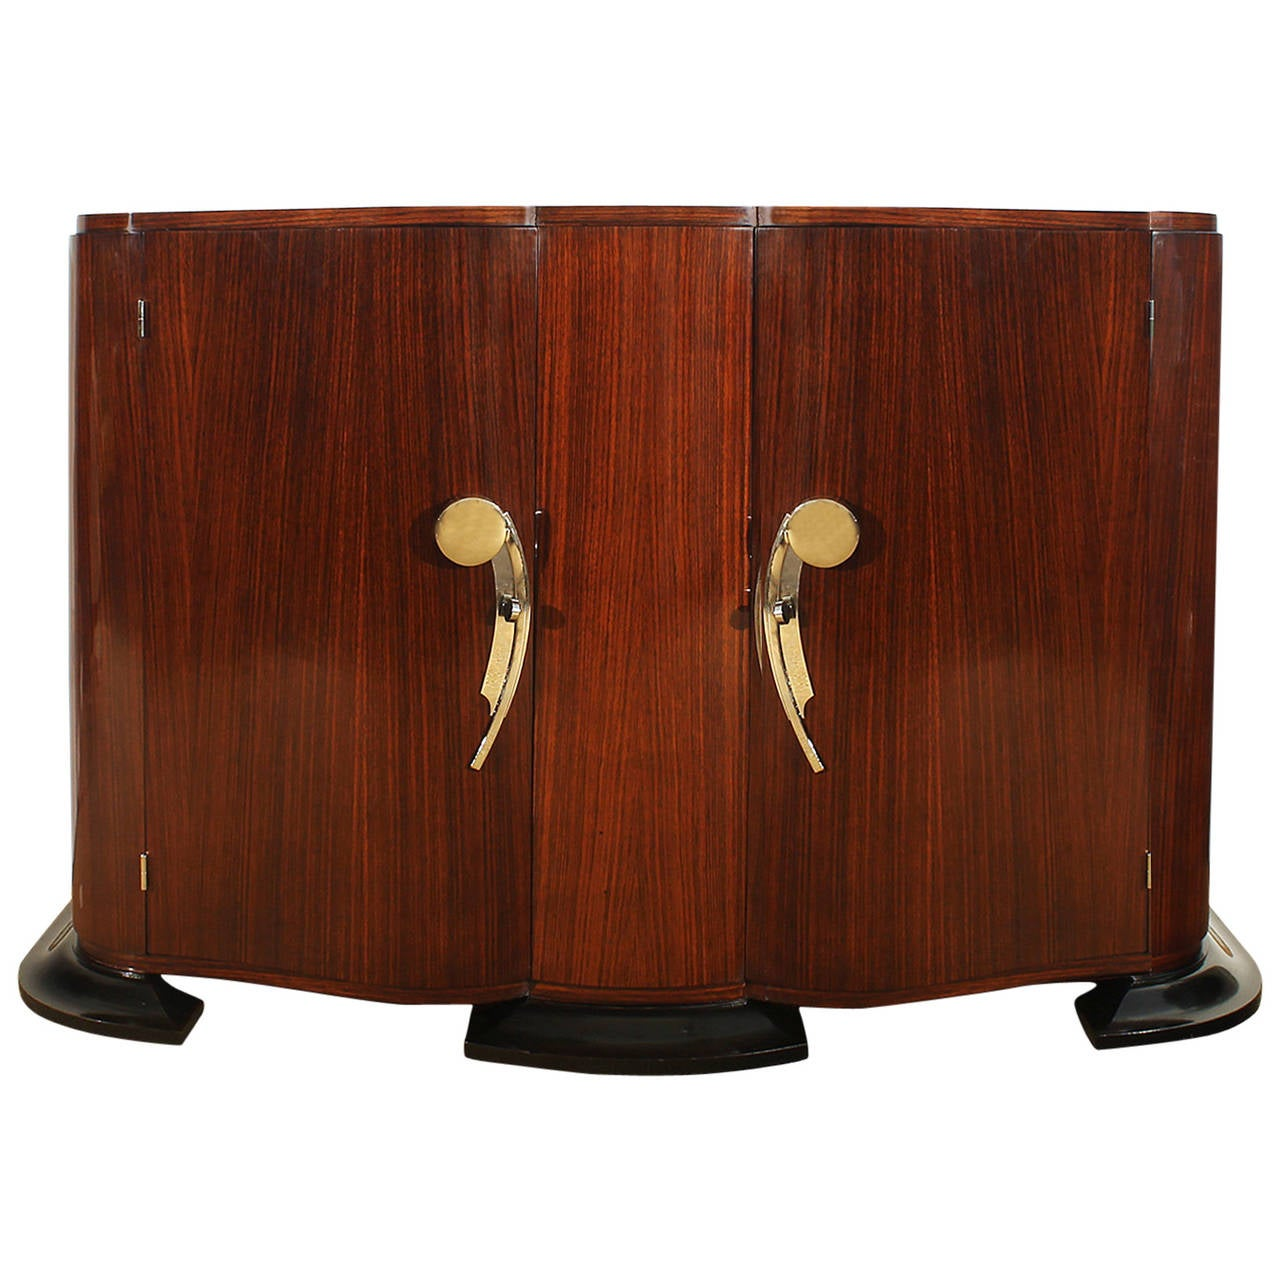 1940s Small Rounded Sideboard, mahogany, rosewood, bronze - France